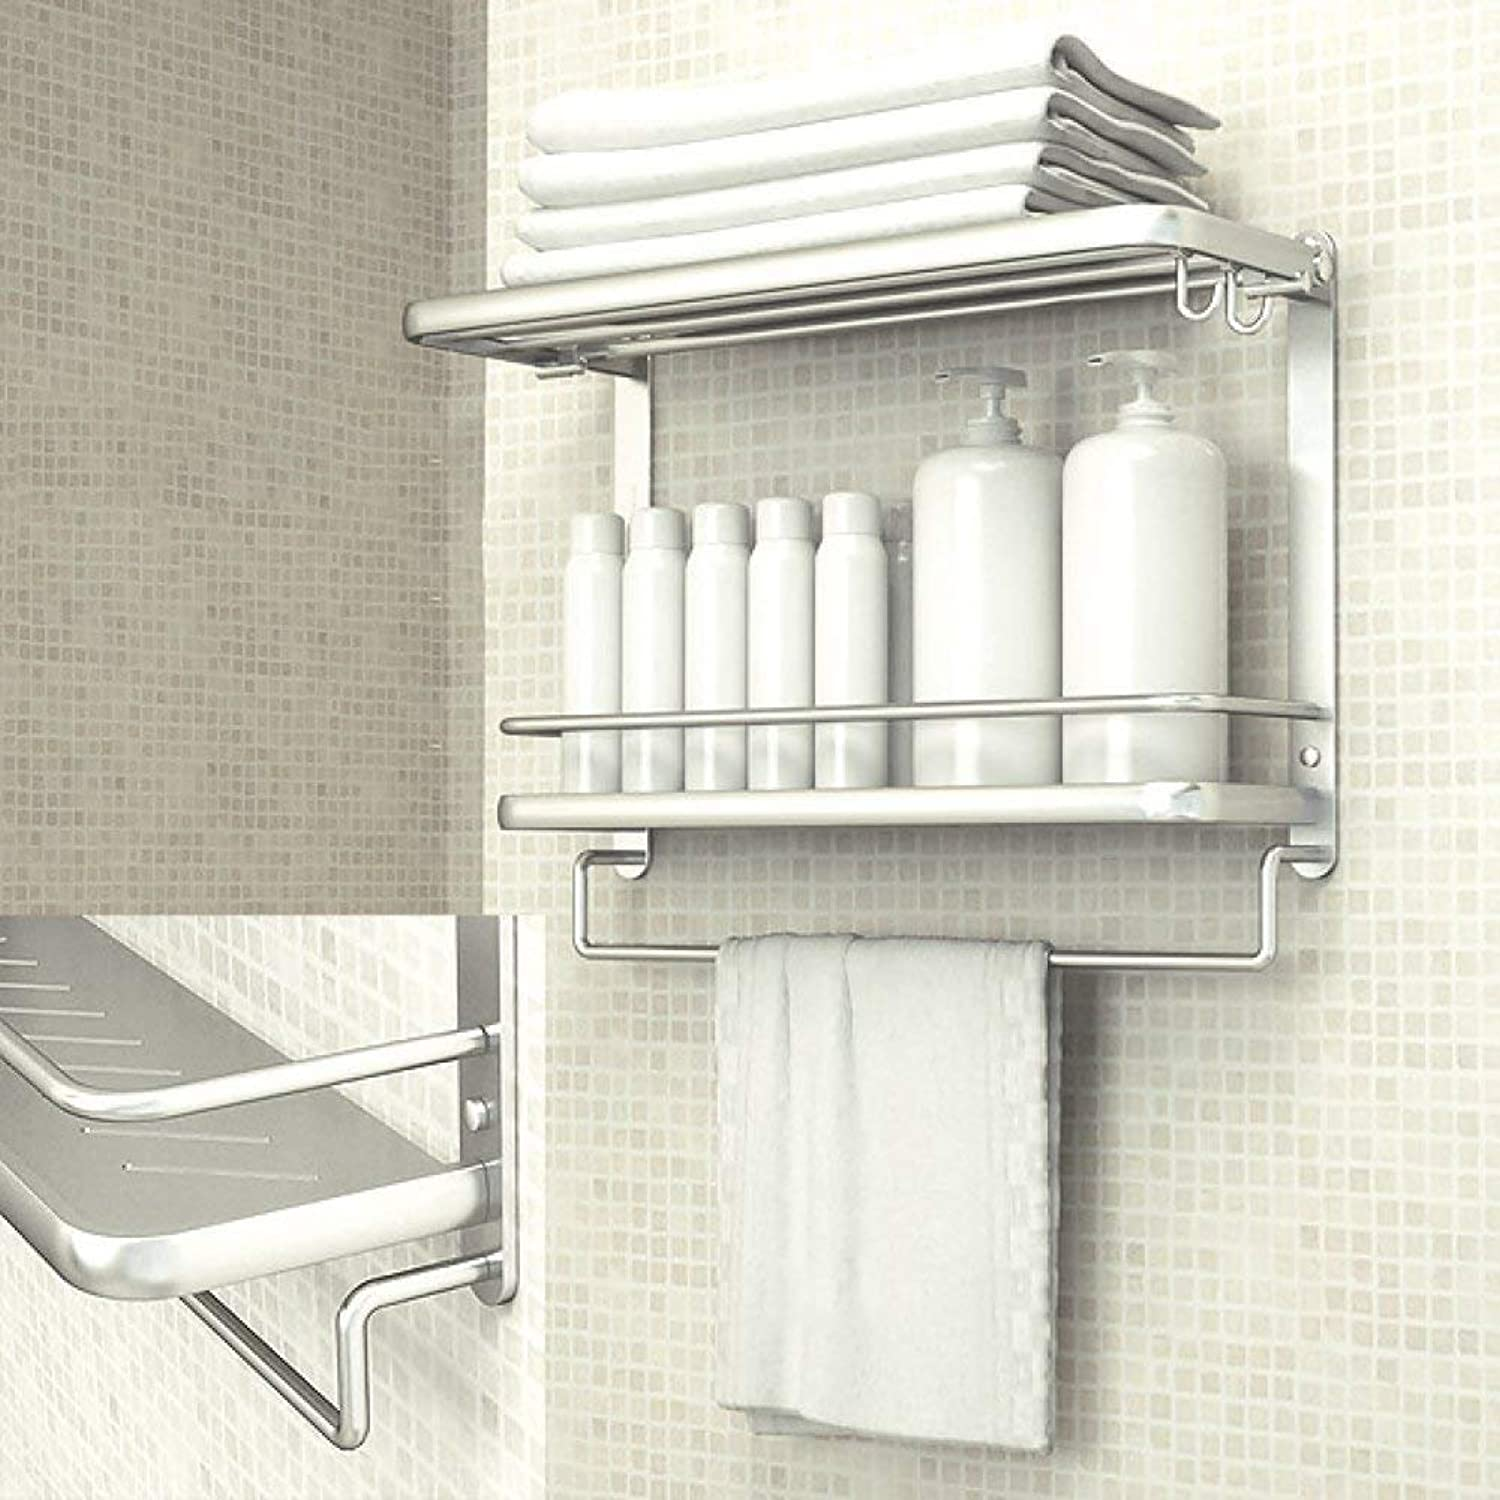 Dry-Towels drilled in The Aluminum Dry-Towels domain of Bains Folding Rack Equipment of The Bathroom Manage